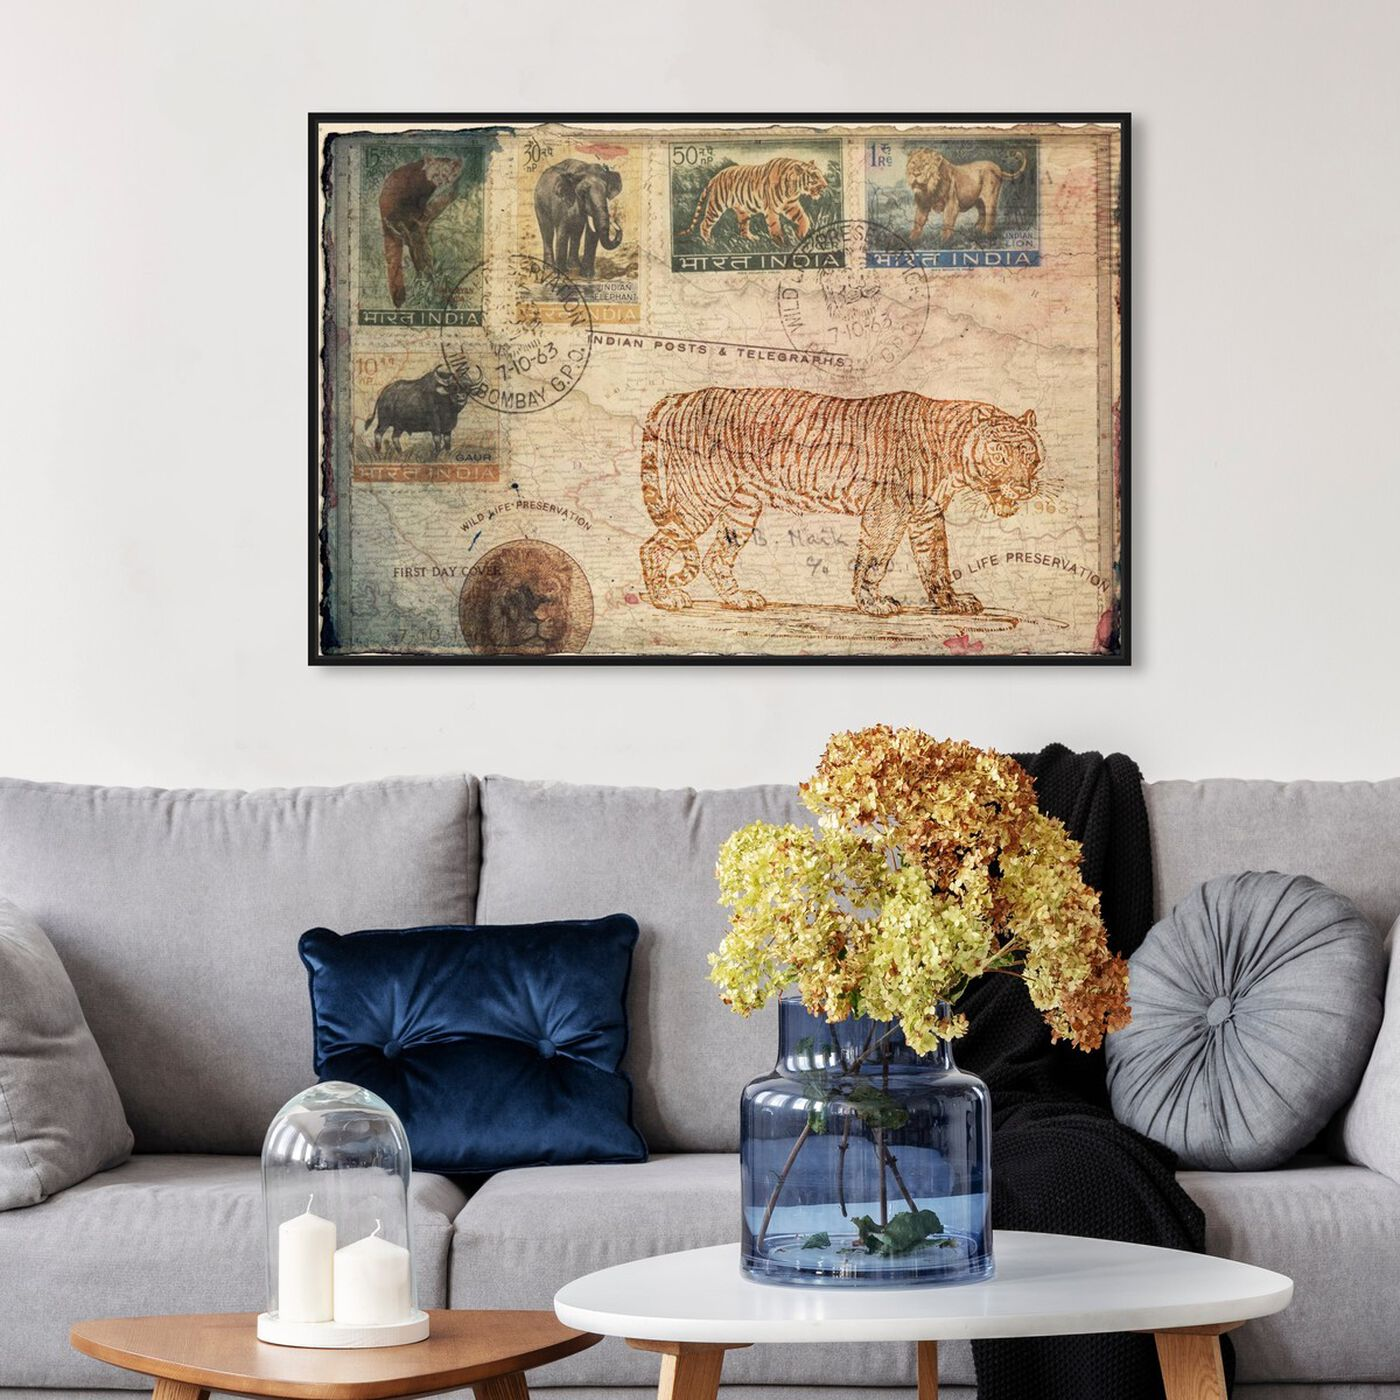 Hanging view of Wild Life Preservation featuring animals and felines art.